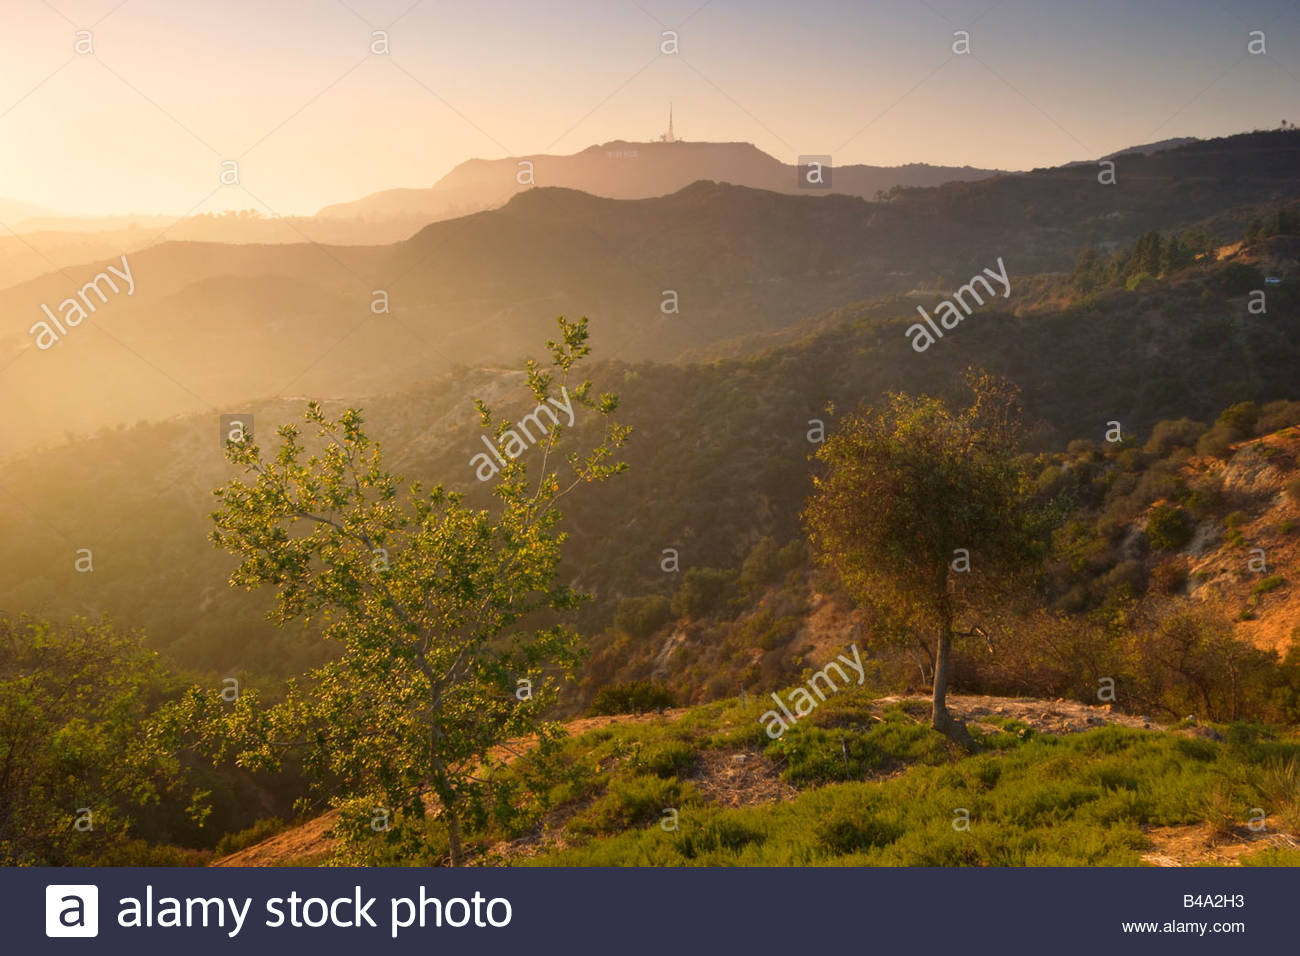 Hollywood Hills Scenic Landscape from Griffith Park Los Angeles California - Stock Image